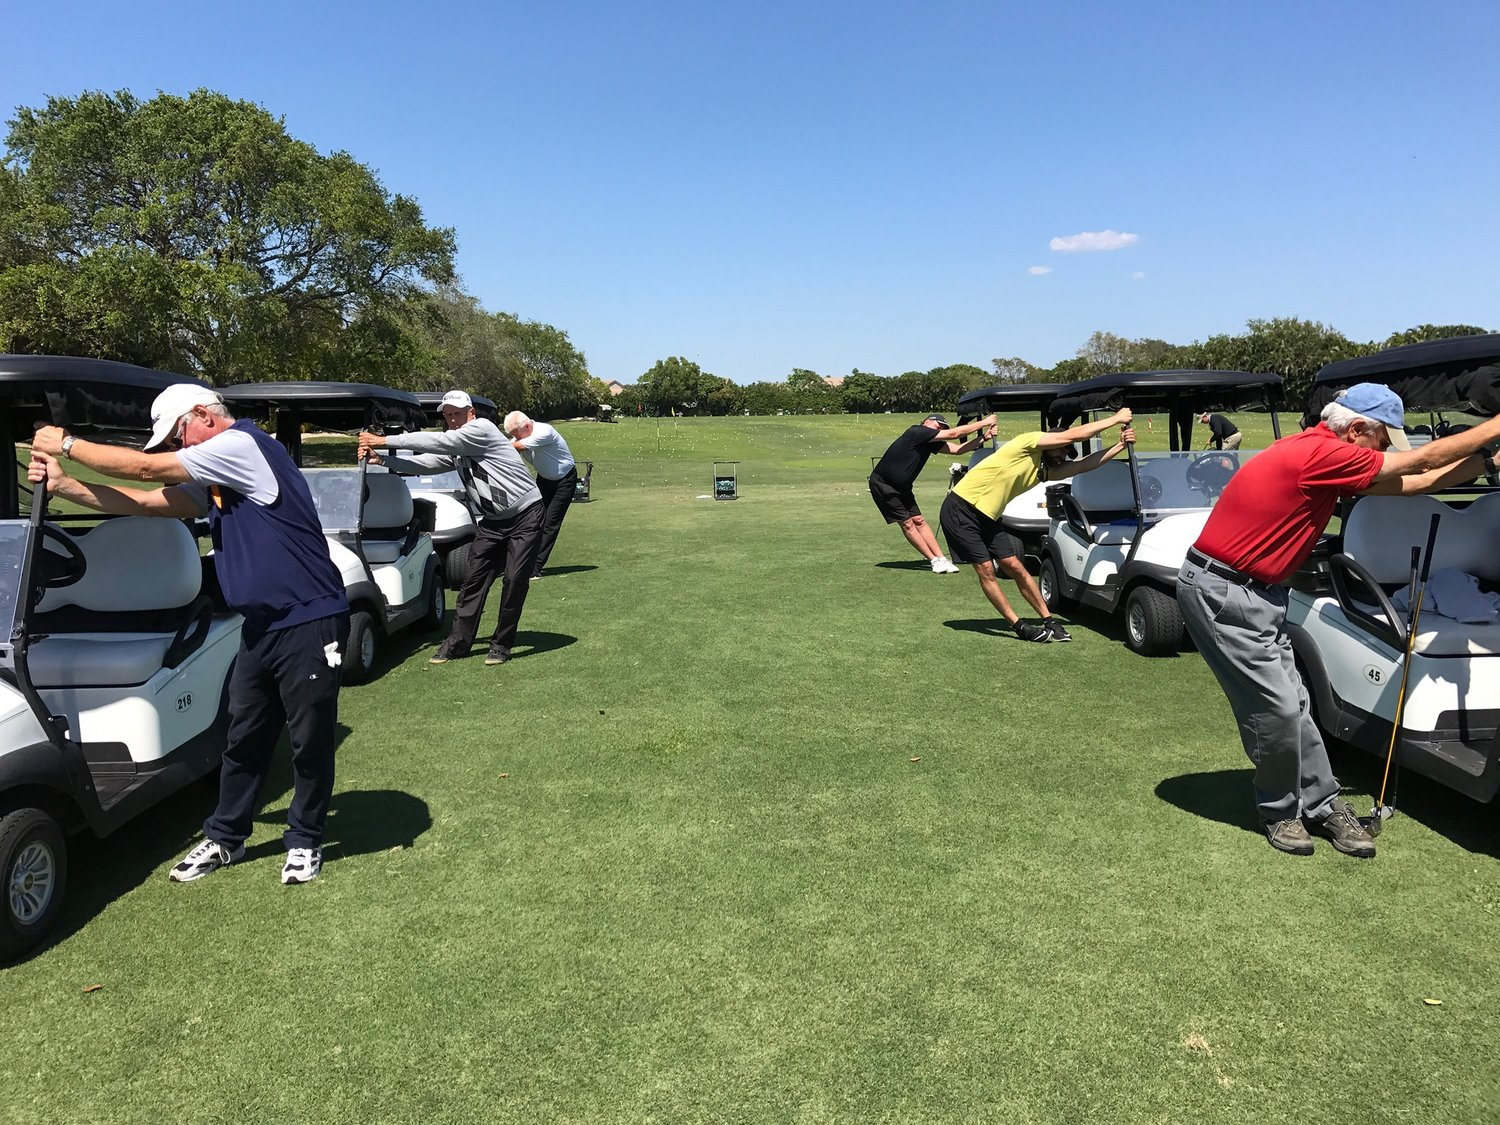 MEMBERS AT A LOCAL COUNTRY CLUB DEMONSTRATING GOLF STRETCHES FROM THEIR GOLF CARTS